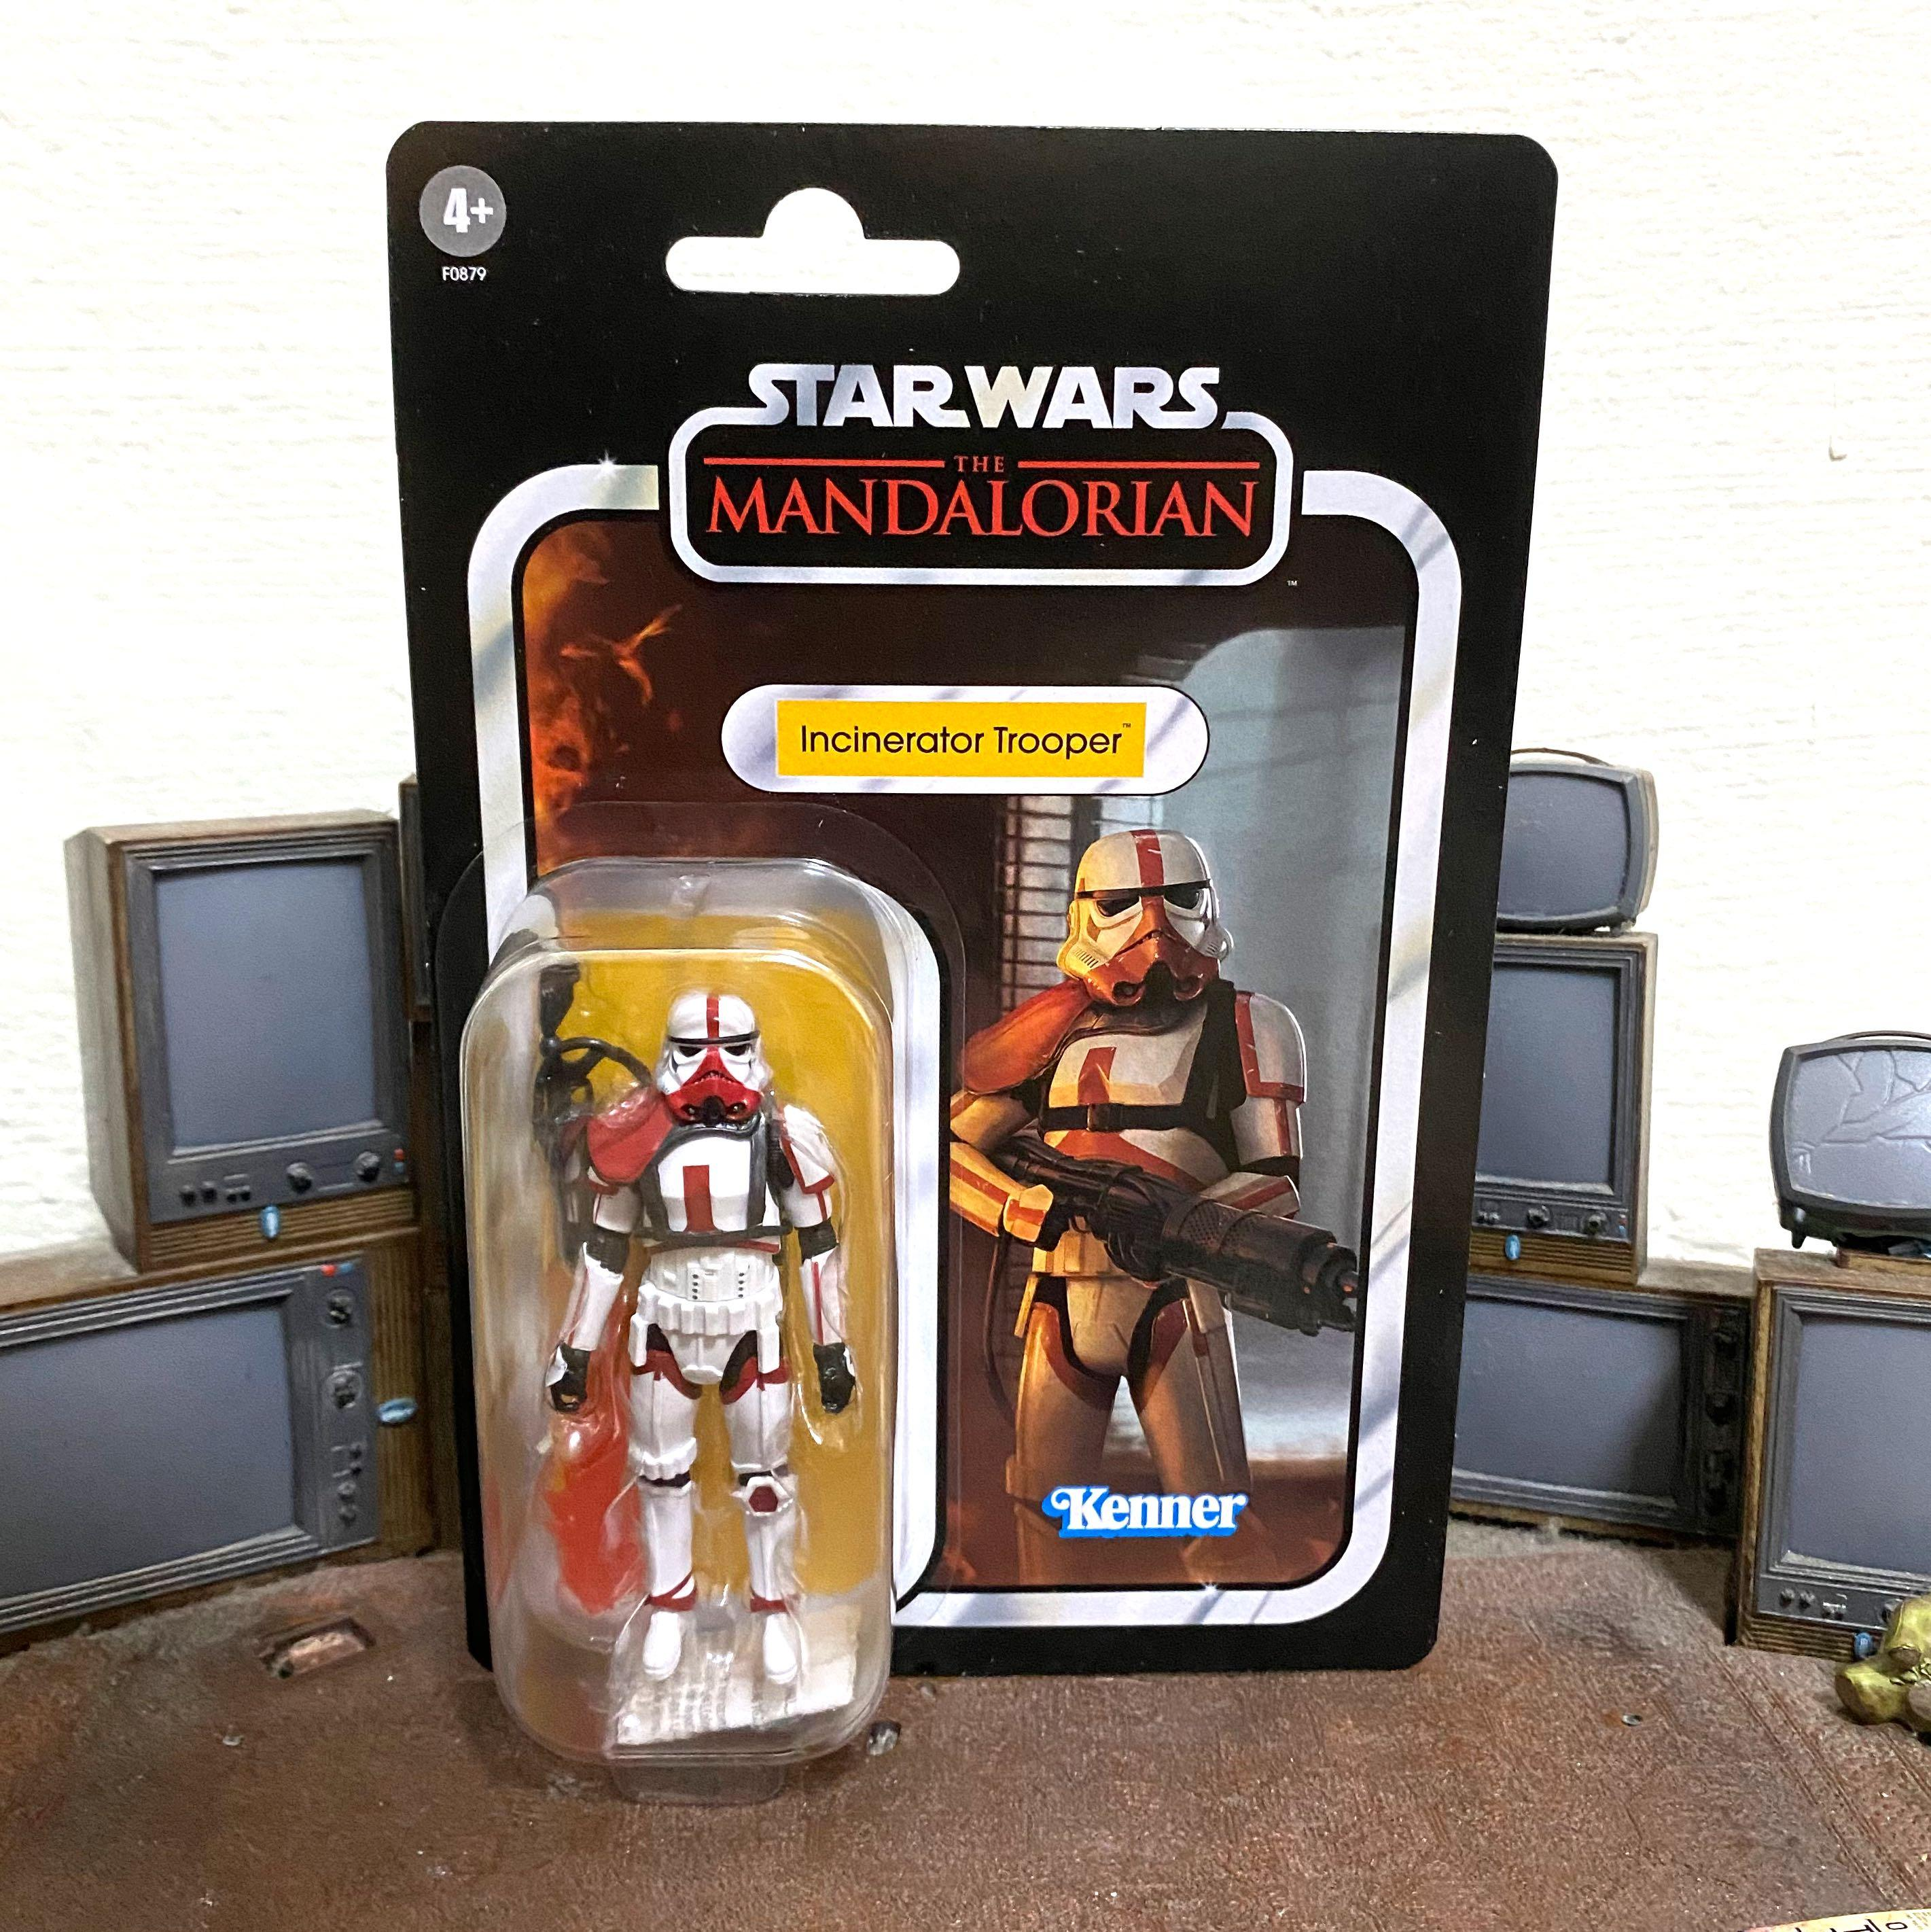 STAR WARS THE MANDALORIAN VINTAGE COLLECTION 3.75 KENNER IN HAND!